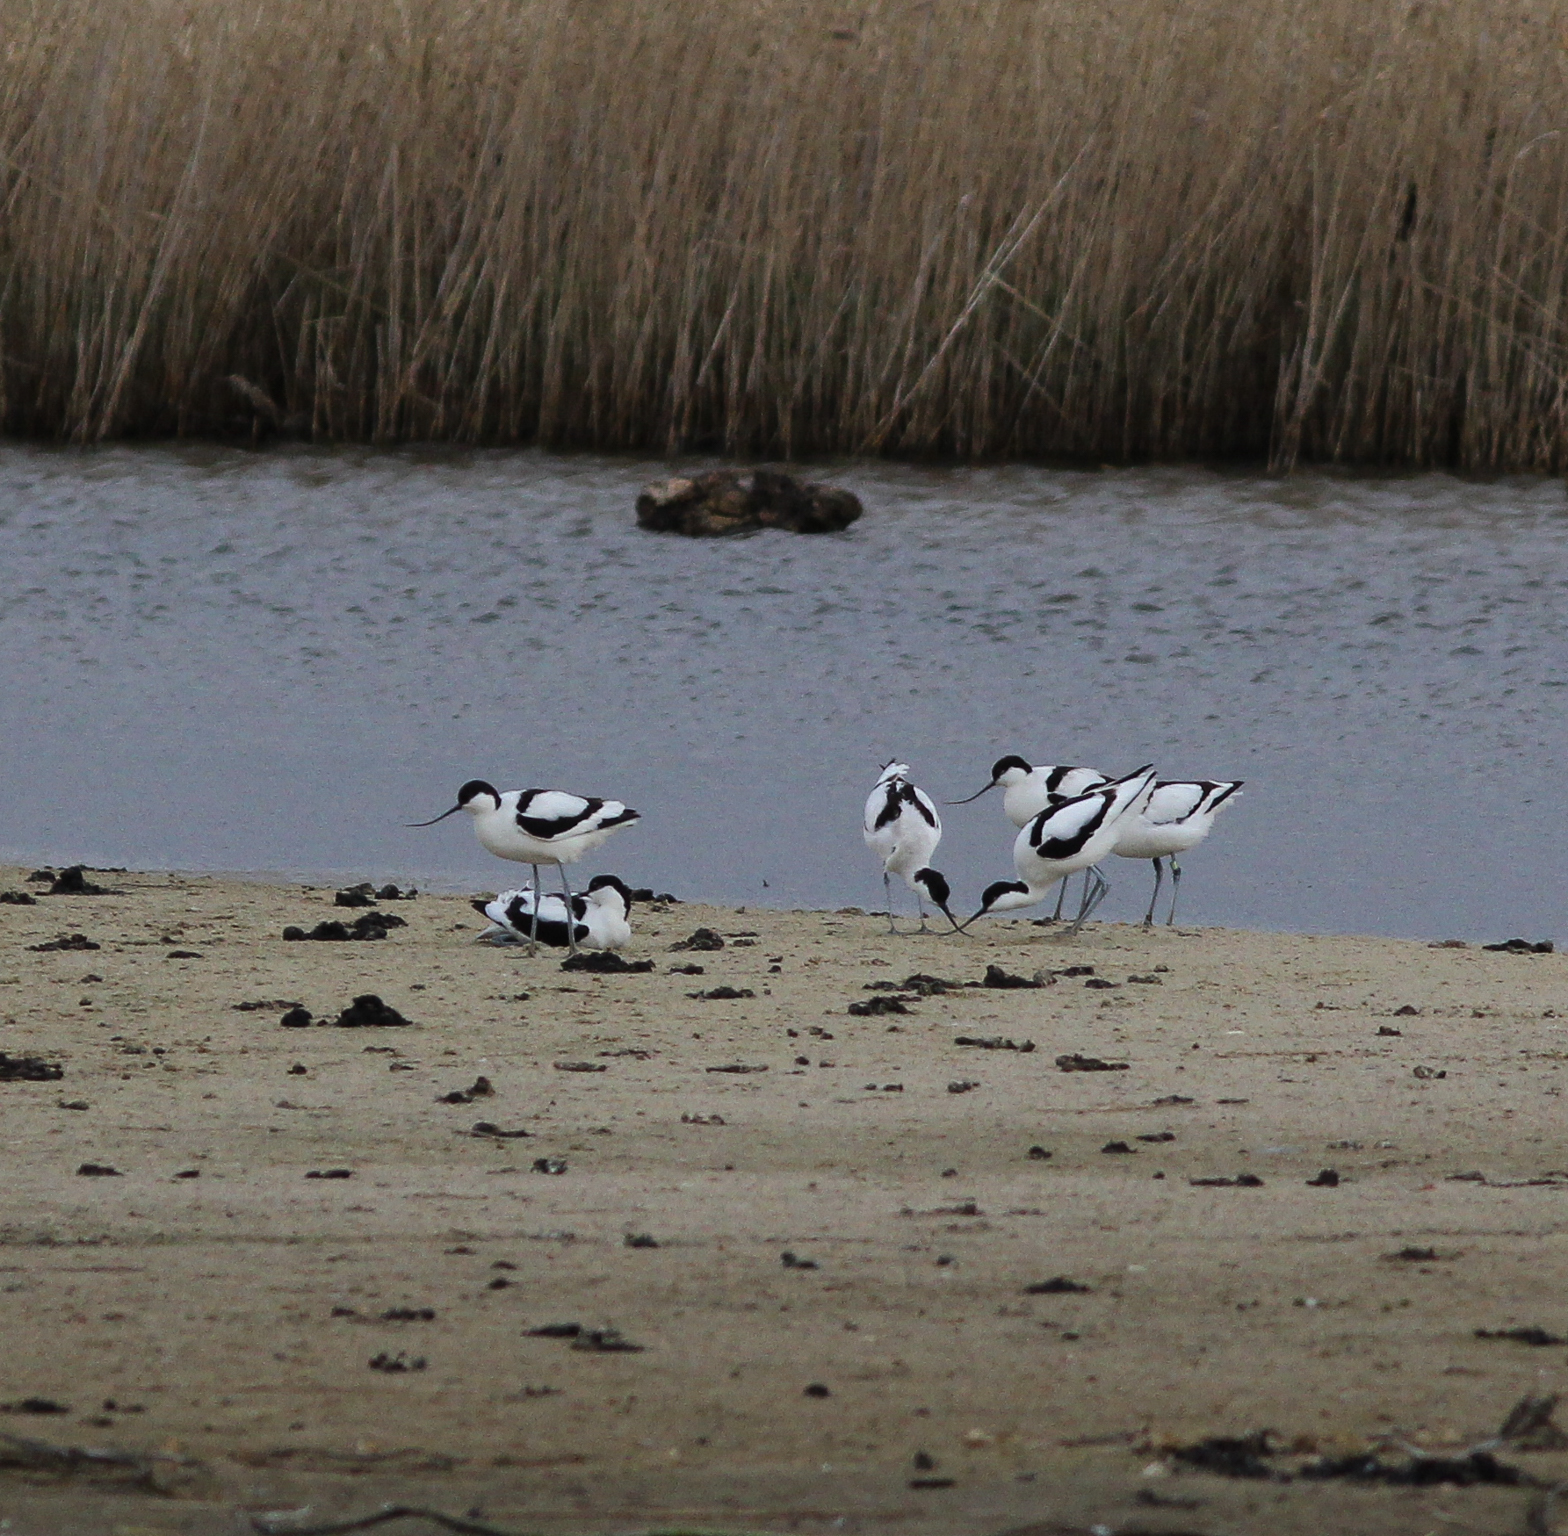 solway black singles The serentity of the solway firth 07/08/2016 lapwing, redshanks, dunnocks, dunlings, egrets, crested grebe, black headed gulls, red shanks, terns.